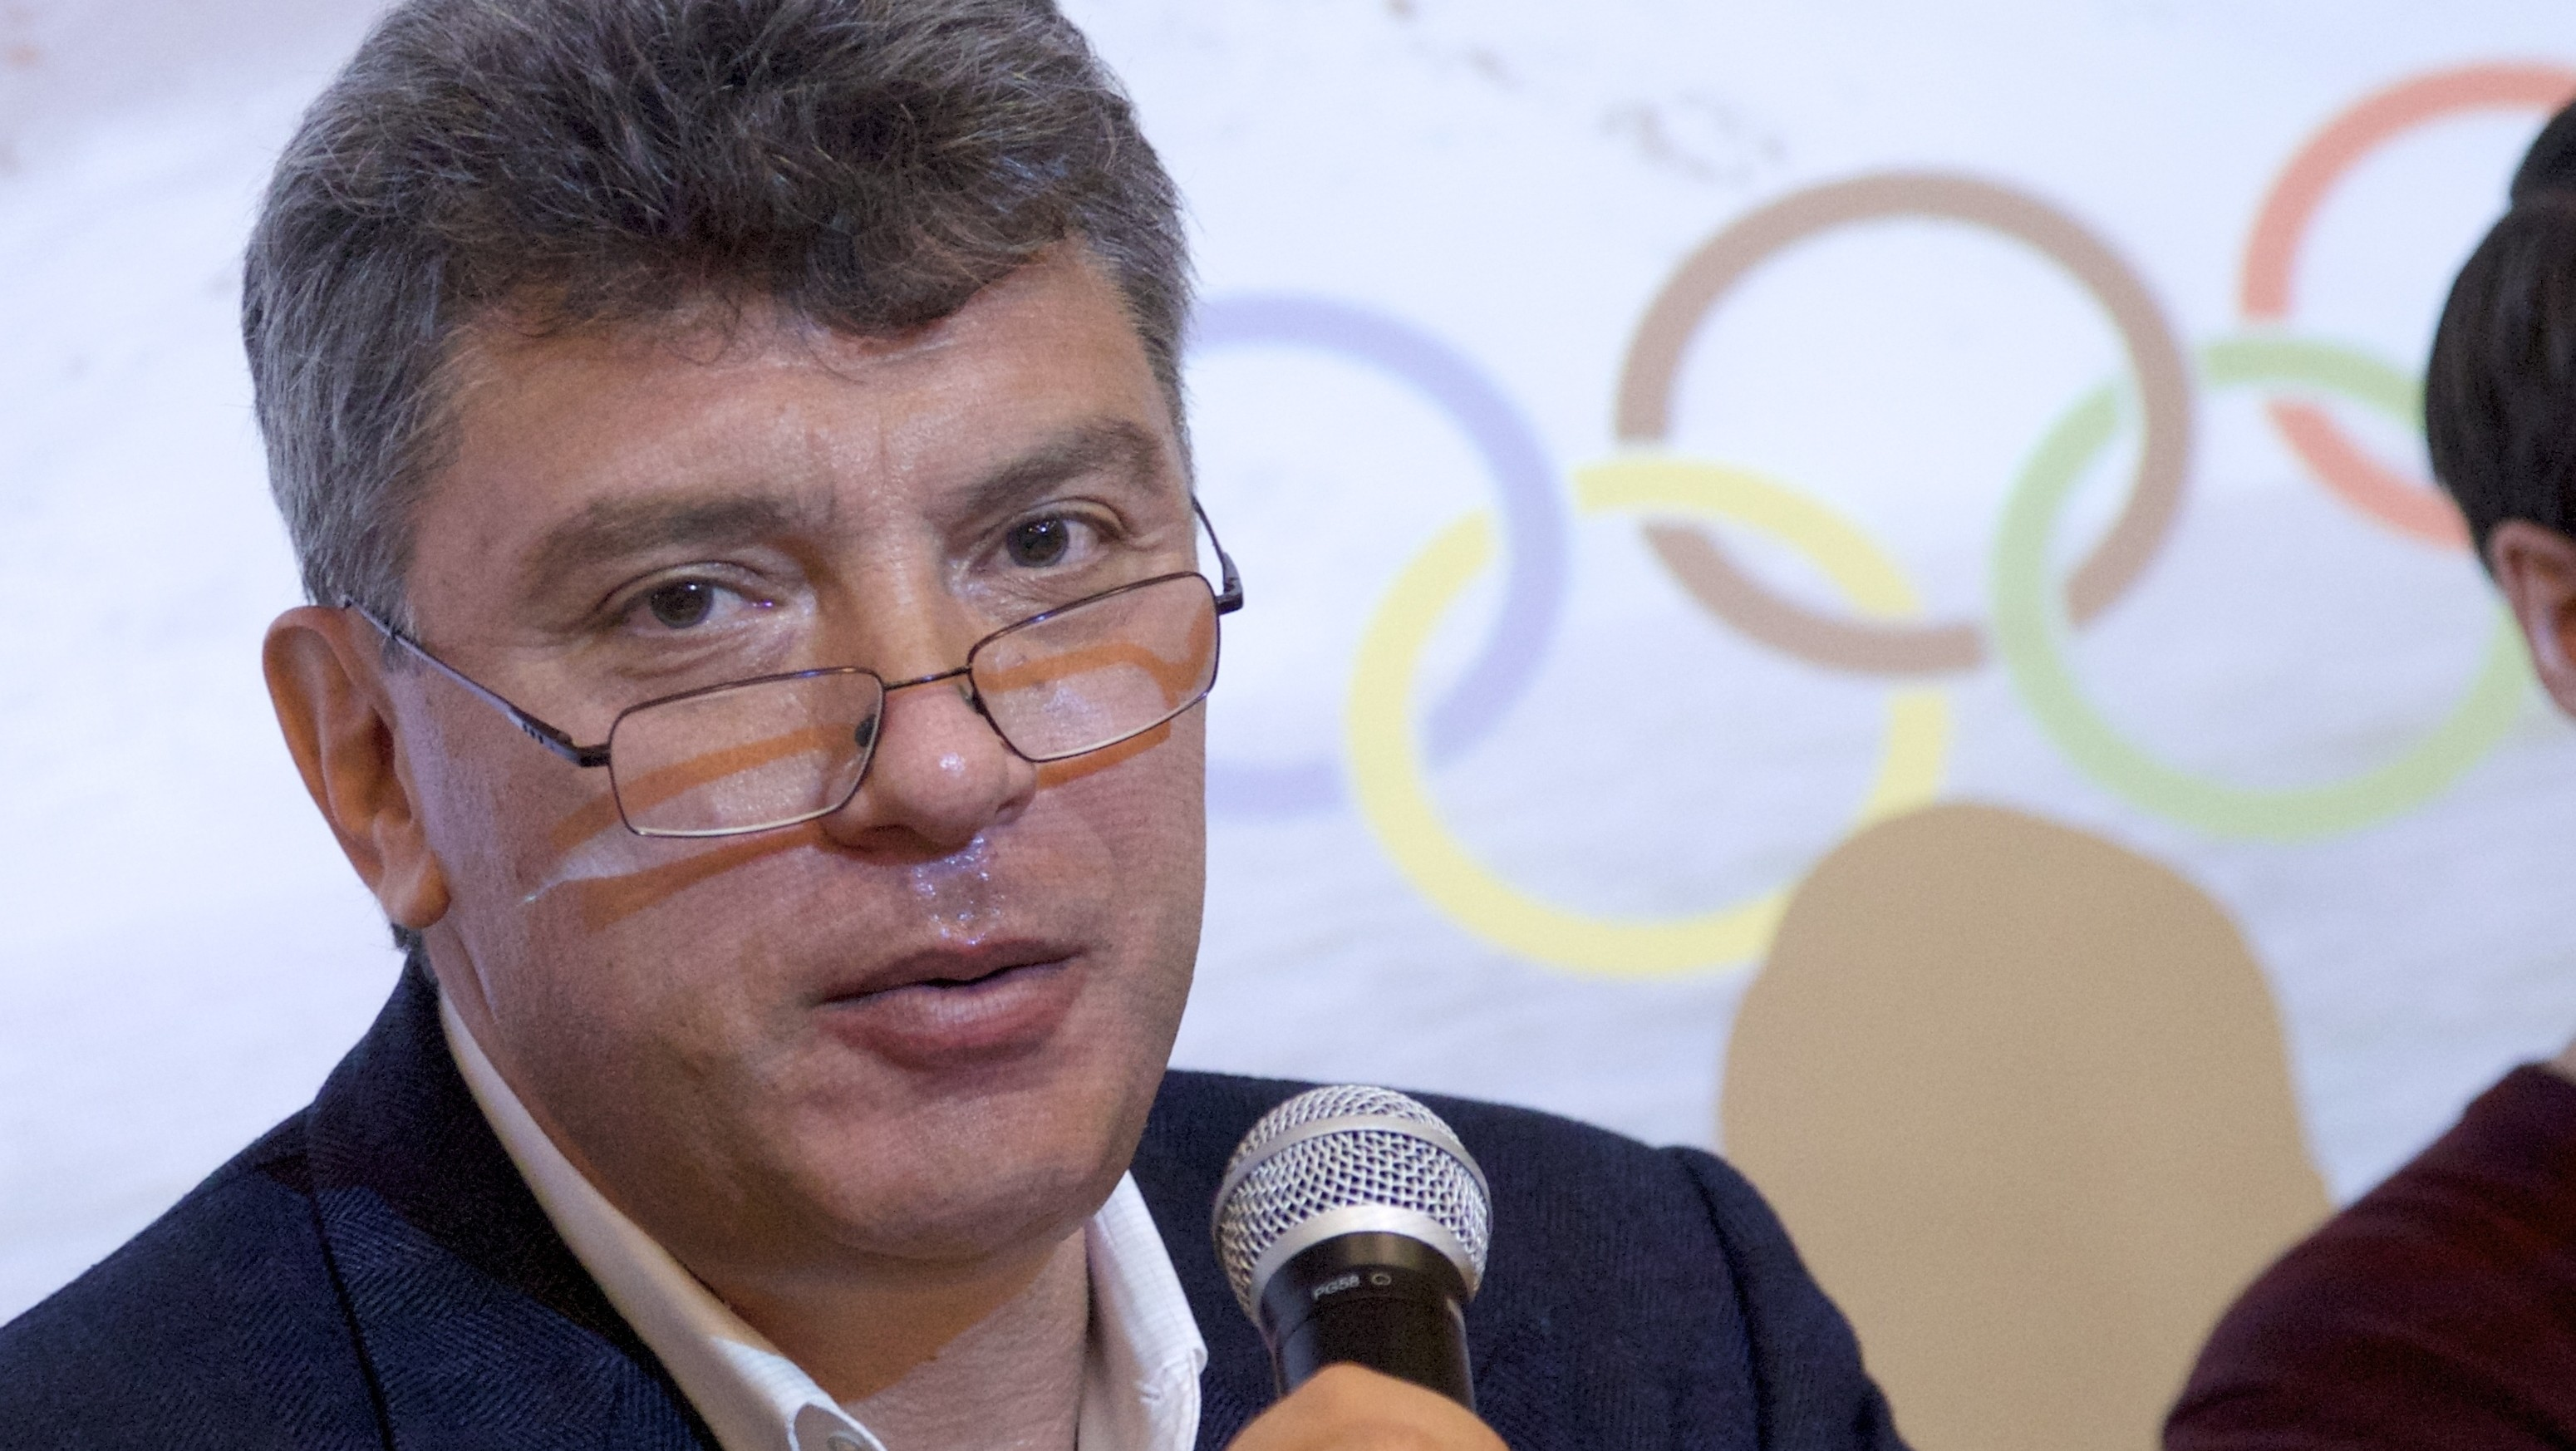 Prominent Putin Foe Boris Nemtsov Fatally Shot in Moscow